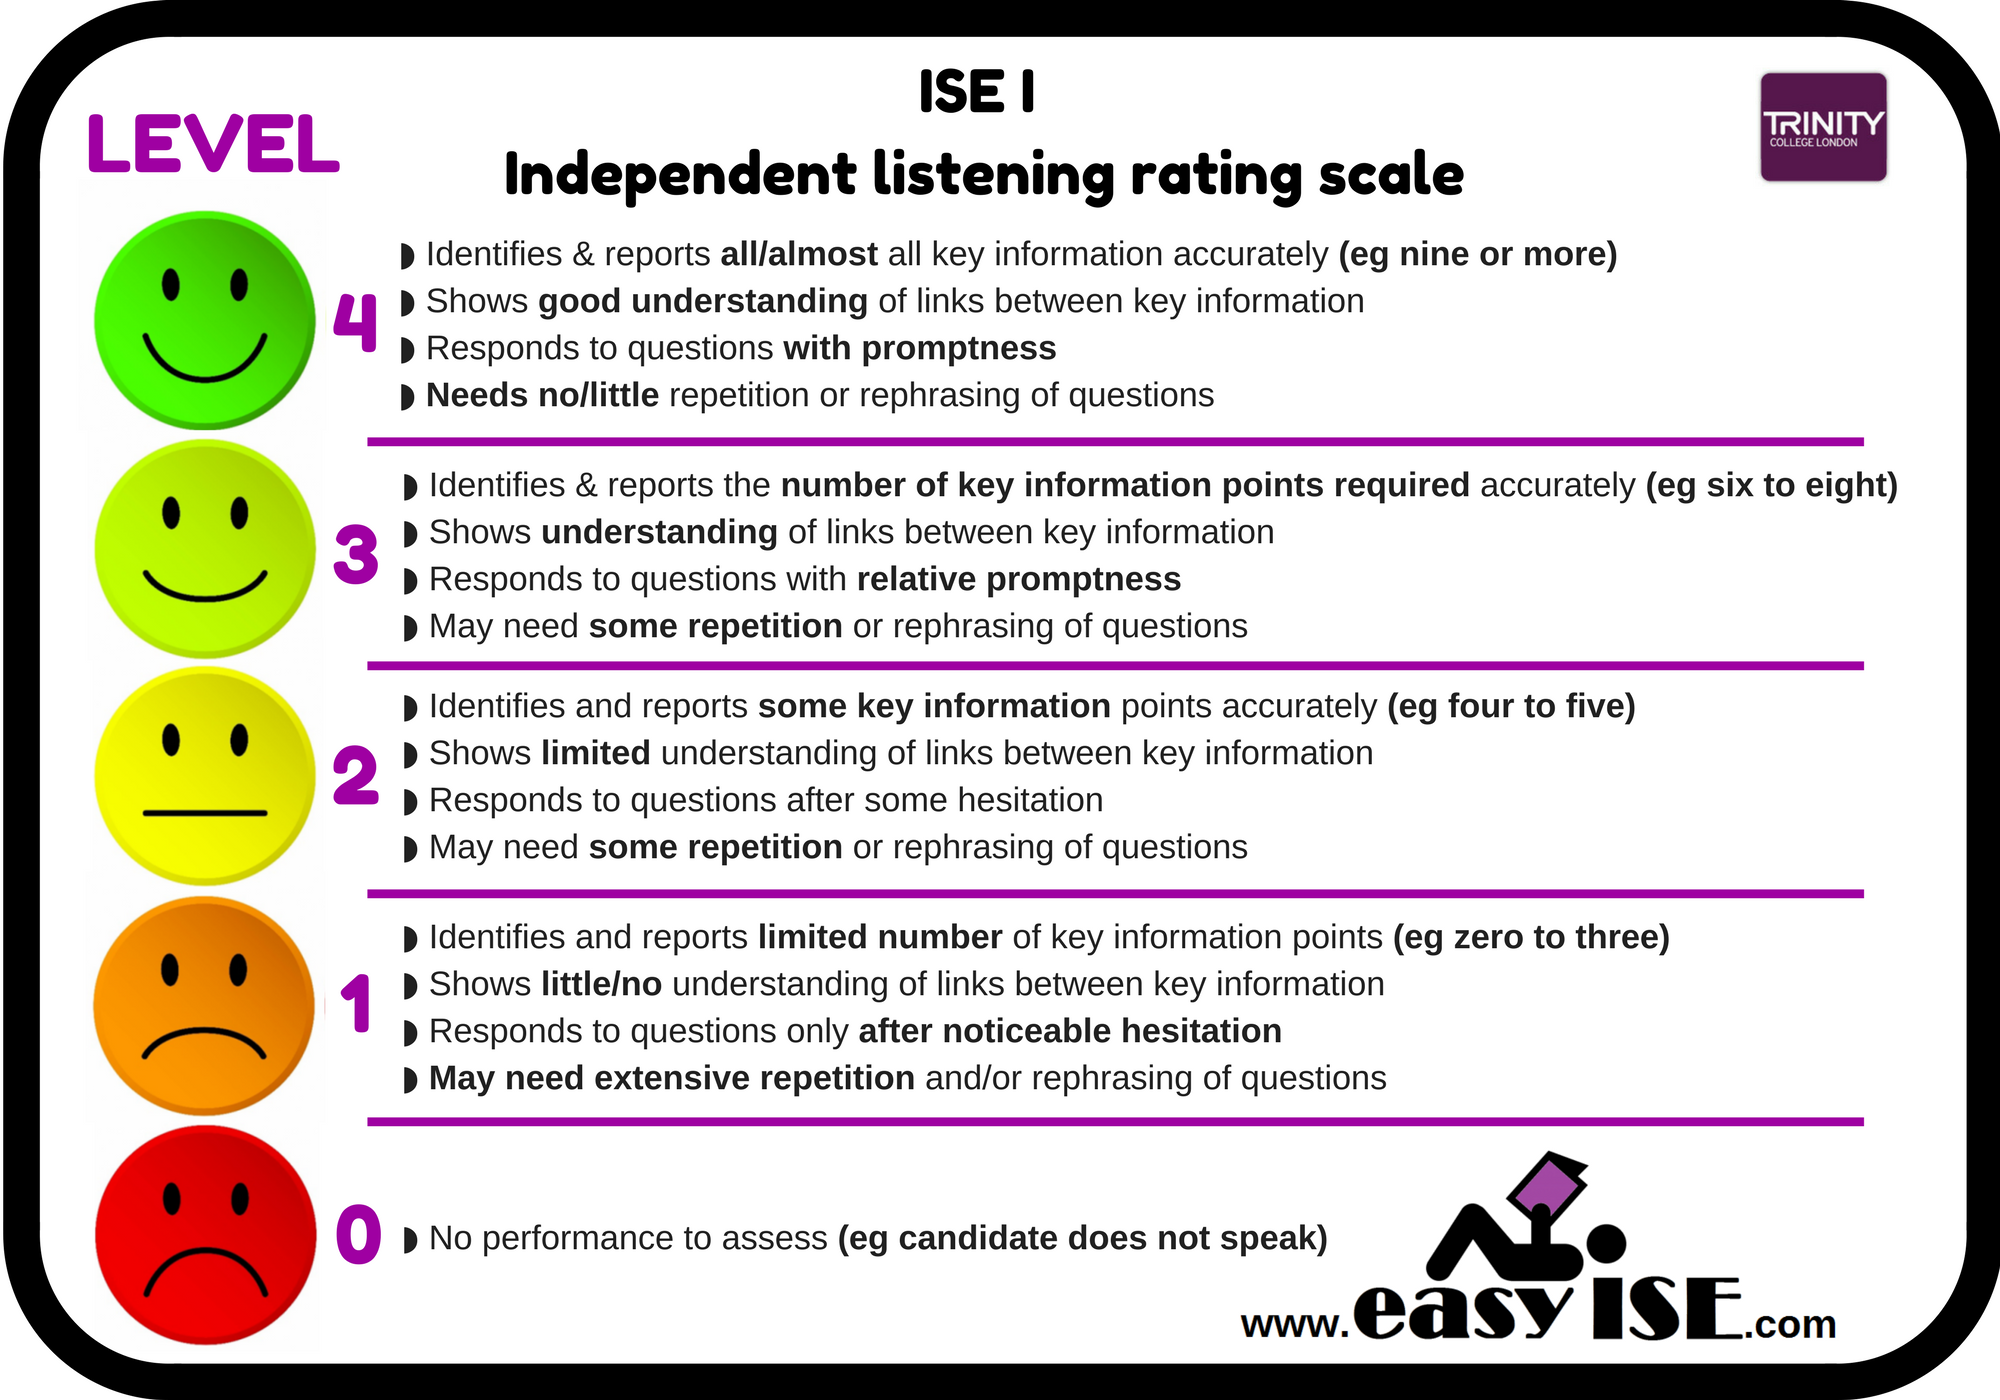 ISE I Trinity Independent listening rating scale exam marking scheme B1 easyise